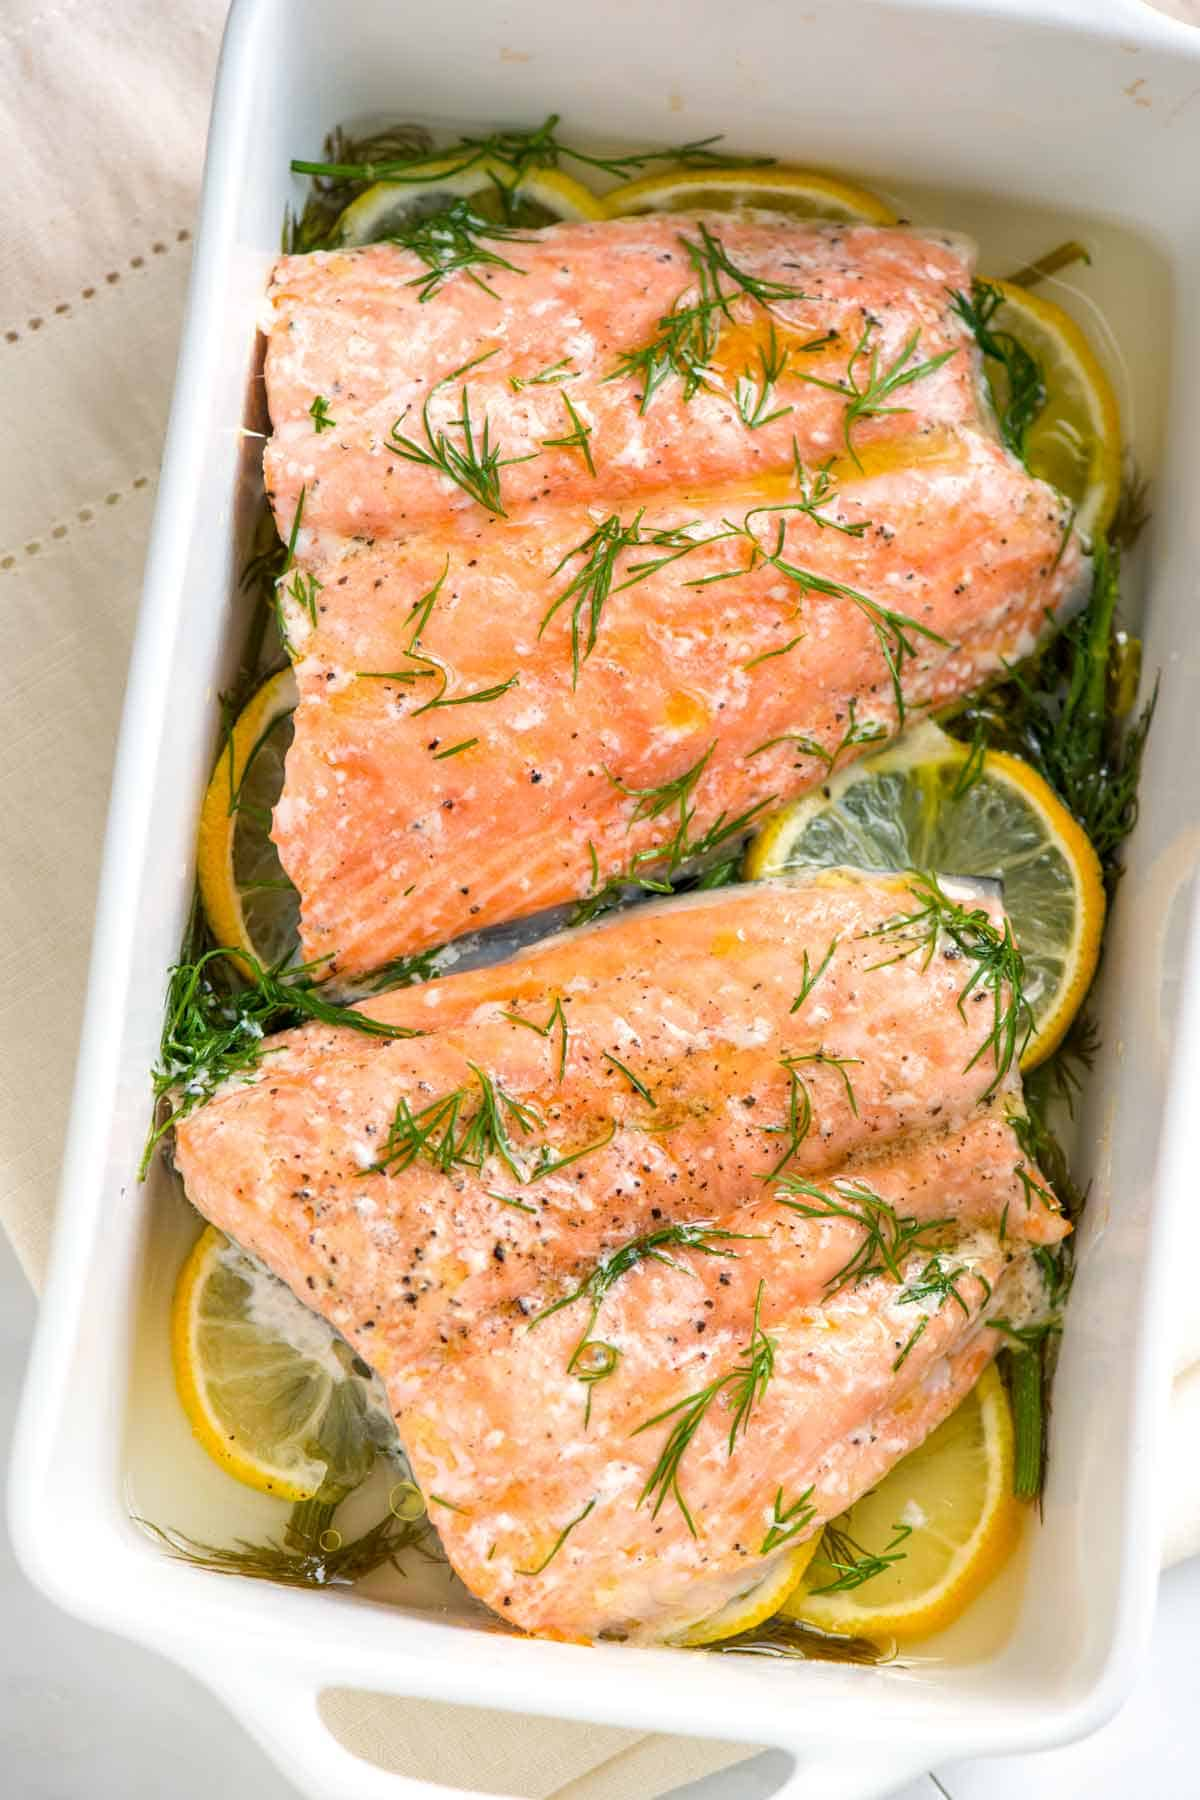 perfectly baked salmon recipe with lemon and dill. Black Bedroom Furniture Sets. Home Design Ideas